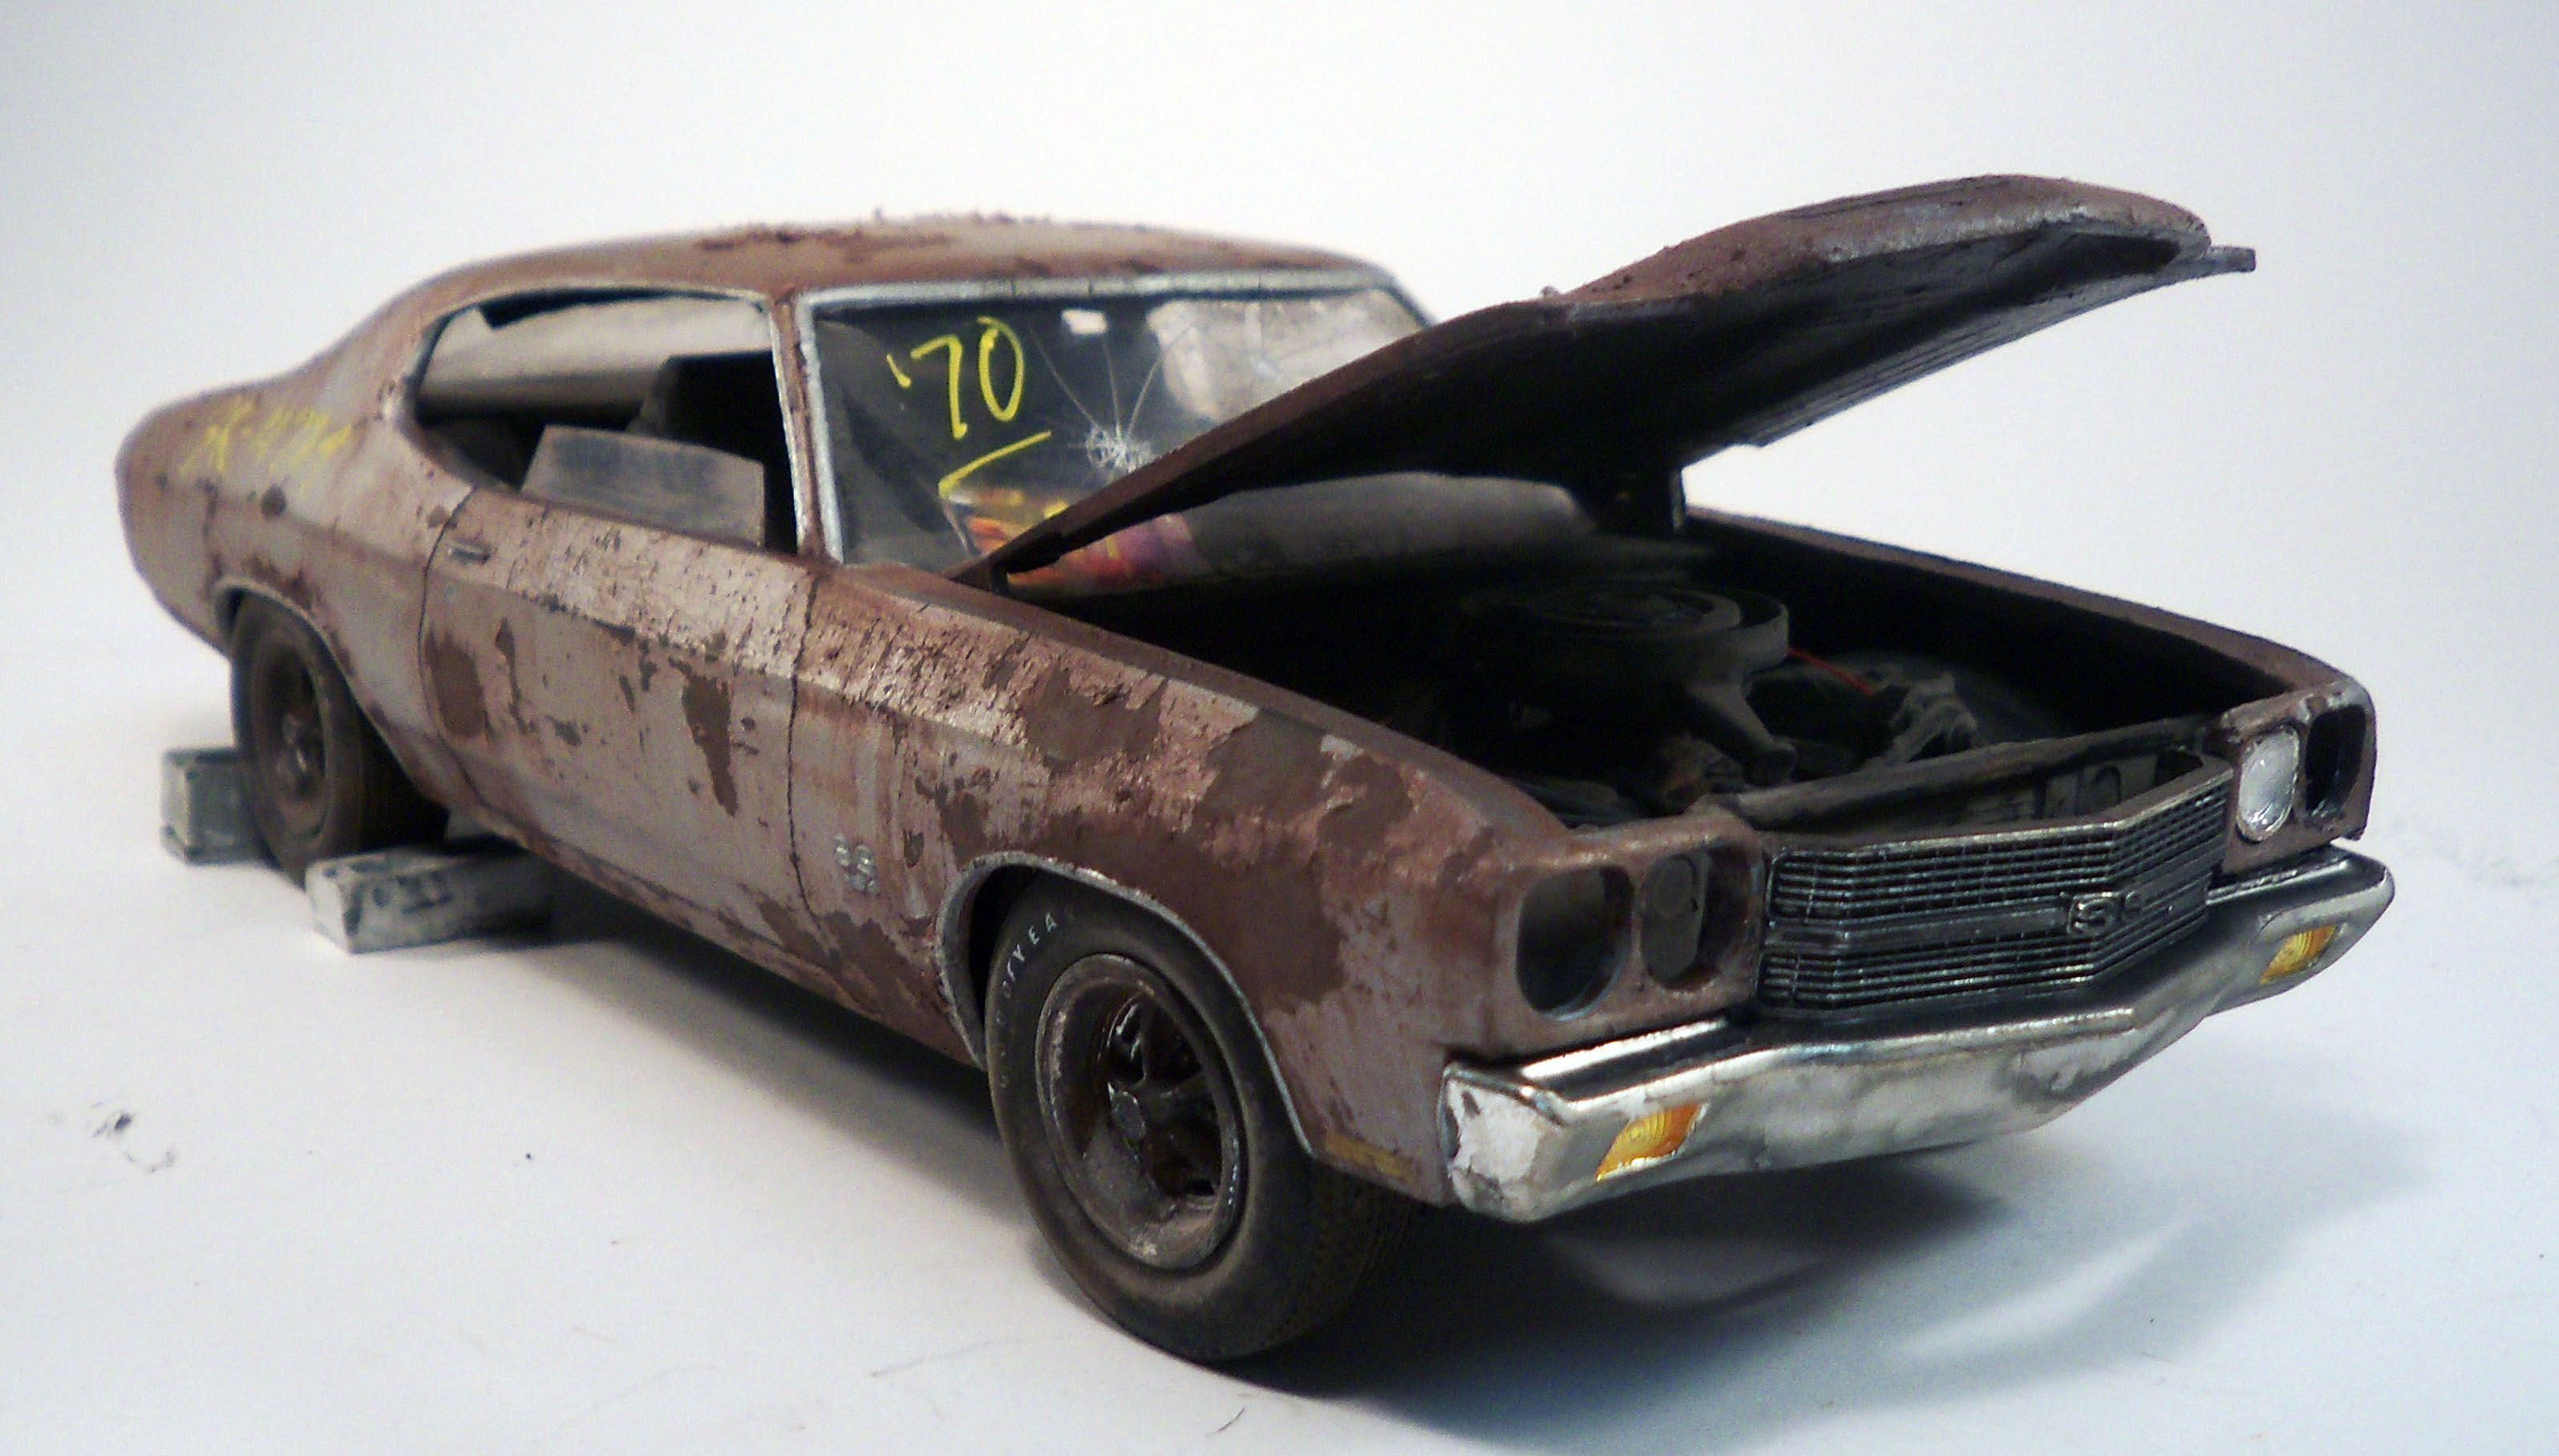 Chevy Chevell model cars. Weathered to the extreme.